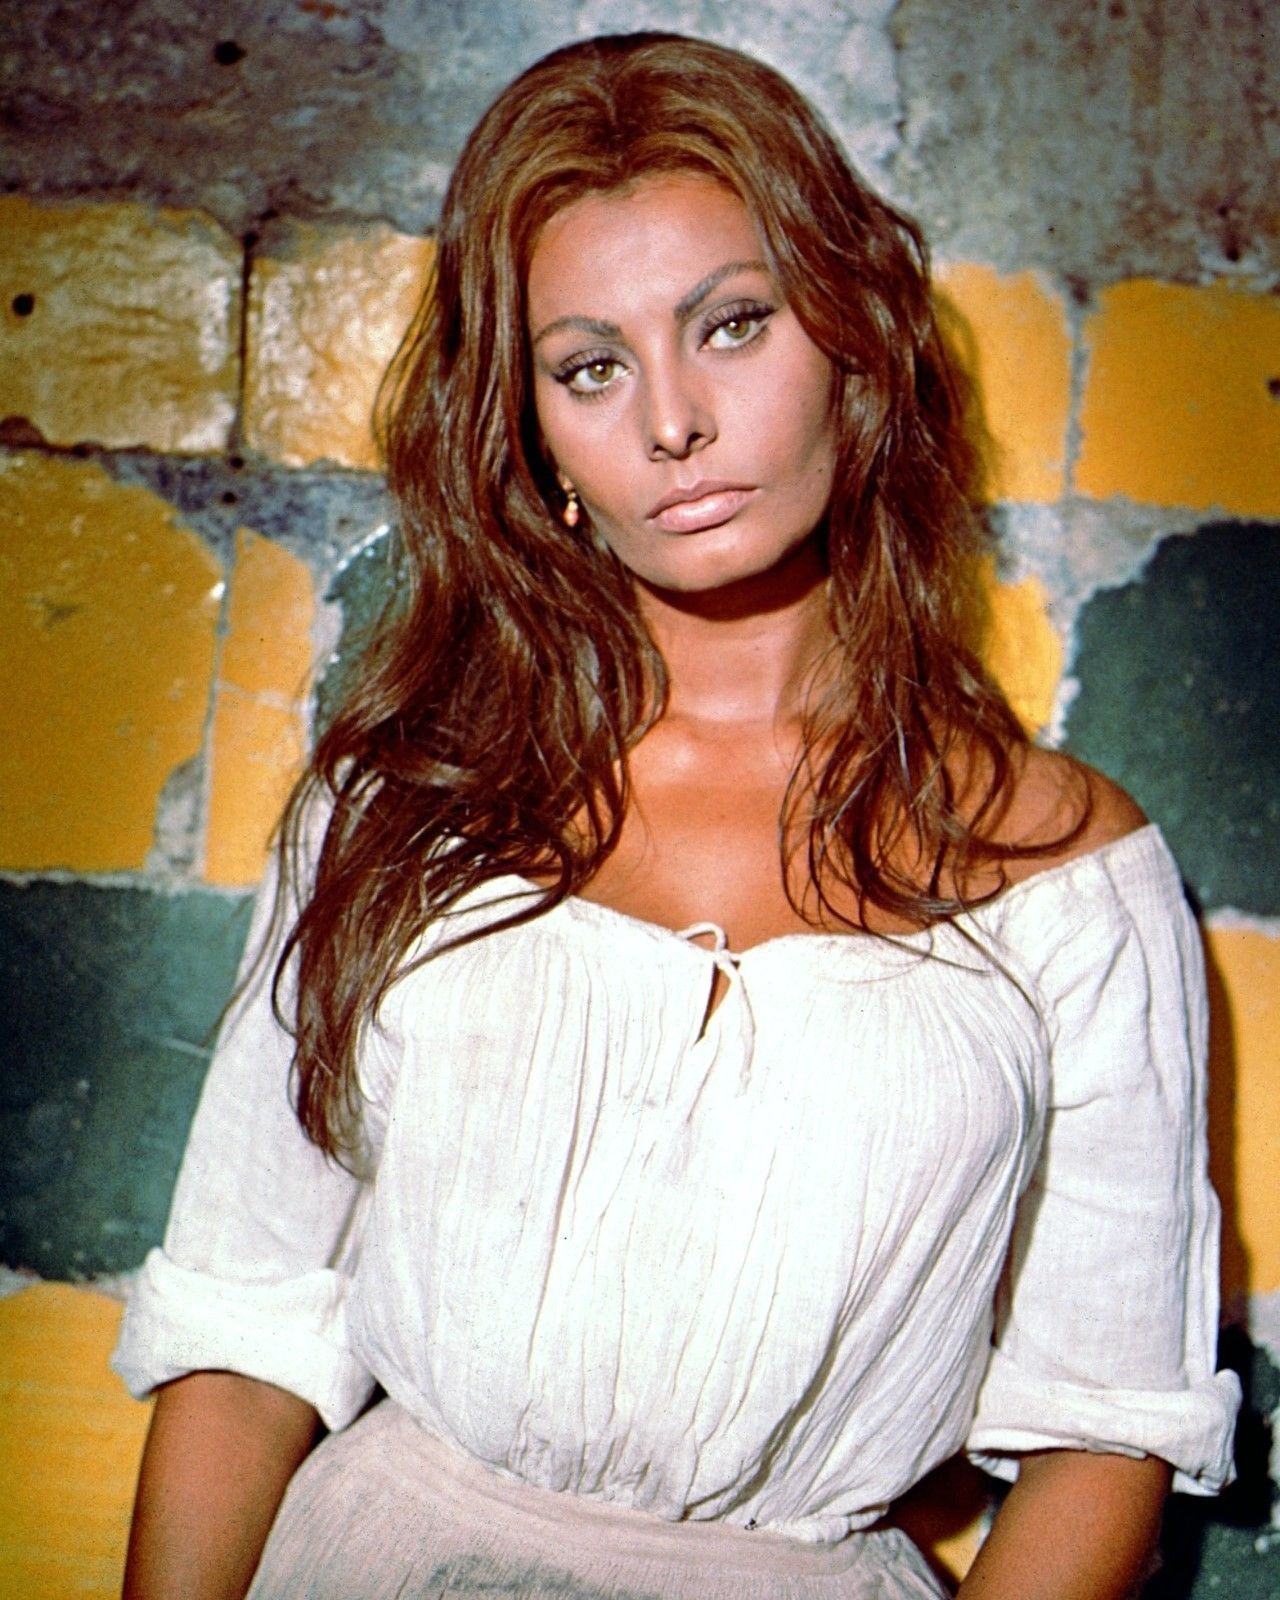 SOPHIA LOREN IN The Film More Than A Miracle  8X10 Quality Photo Print  37  SOPHIA LOREN IN The Film More Than A Miracle  8X10 Quality Photo Print  372 BUY 2 GE